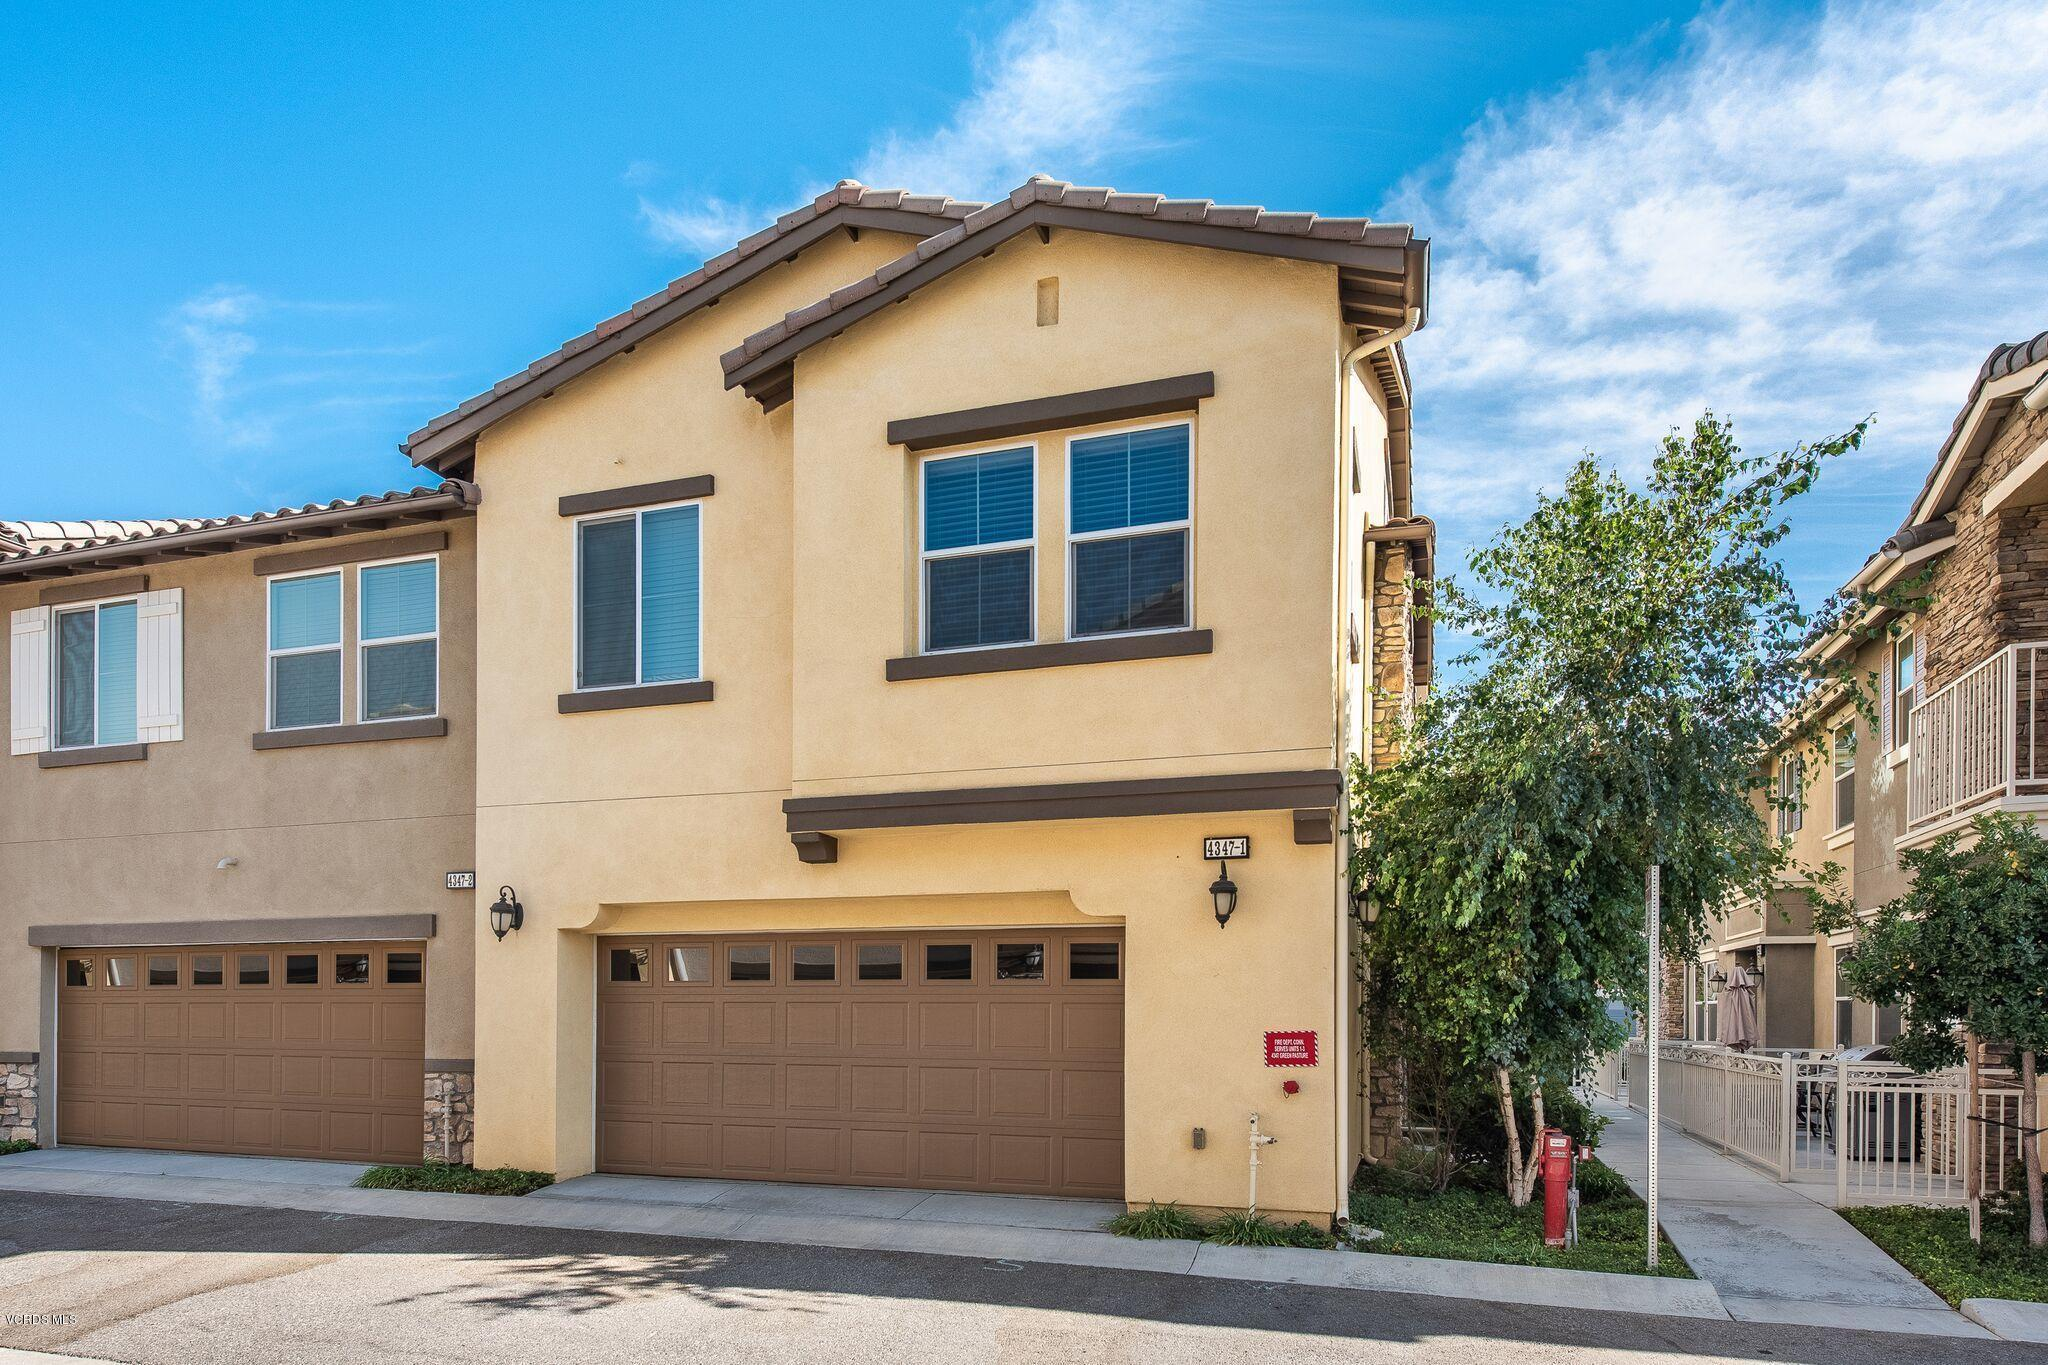 3 Bed 2 Full 1 Partial Baths Rental For Rent In Simi Valley For 3 150